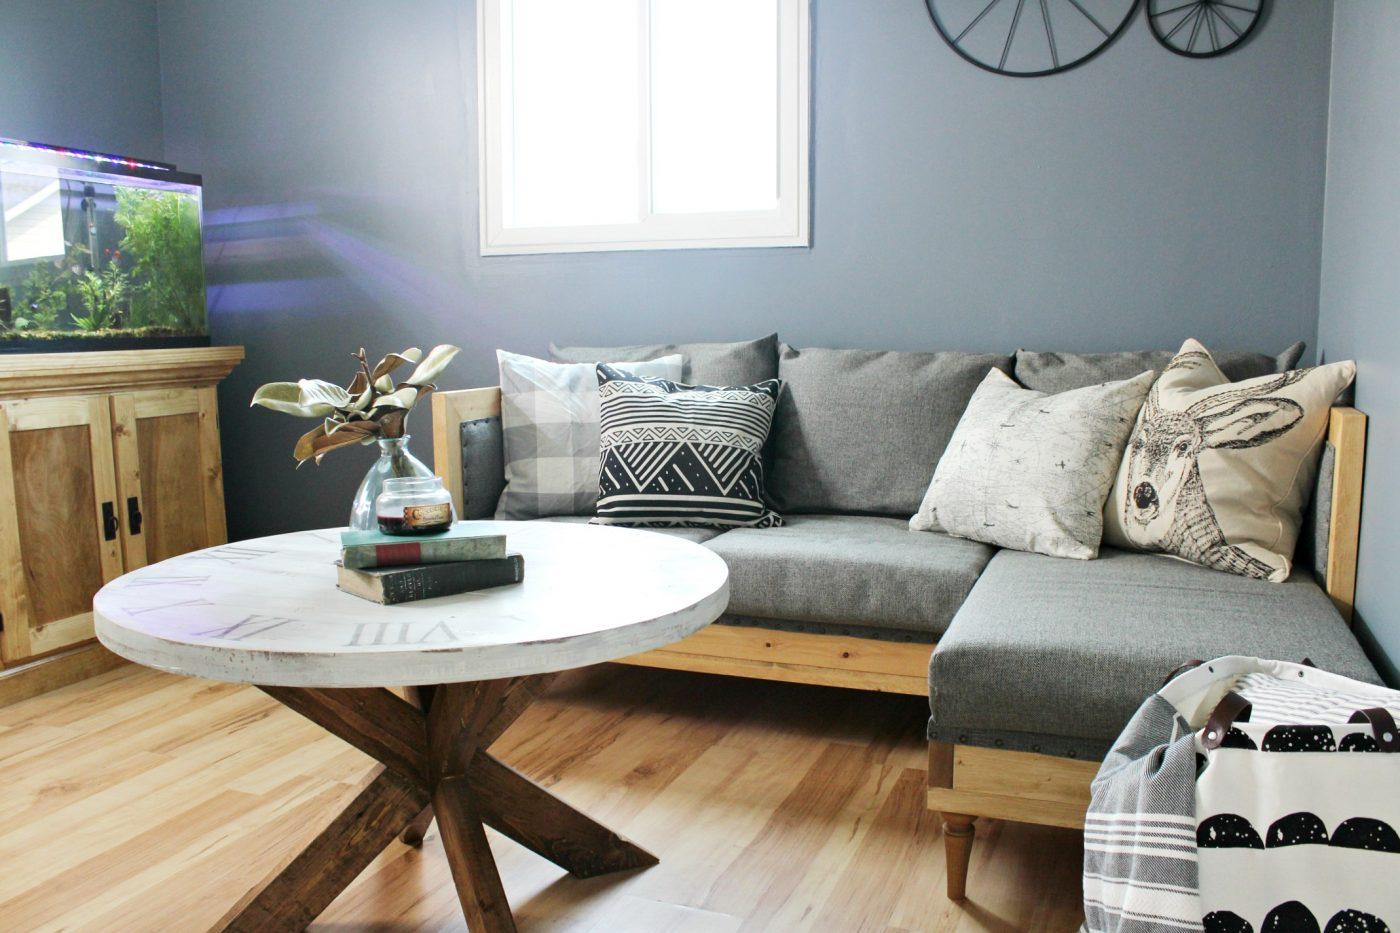 Diy living room furniture White How To Make Diy Upholstered Couch In Man Cave Room Woodshop Diaries Build Your Own Diy Upholstered Couch